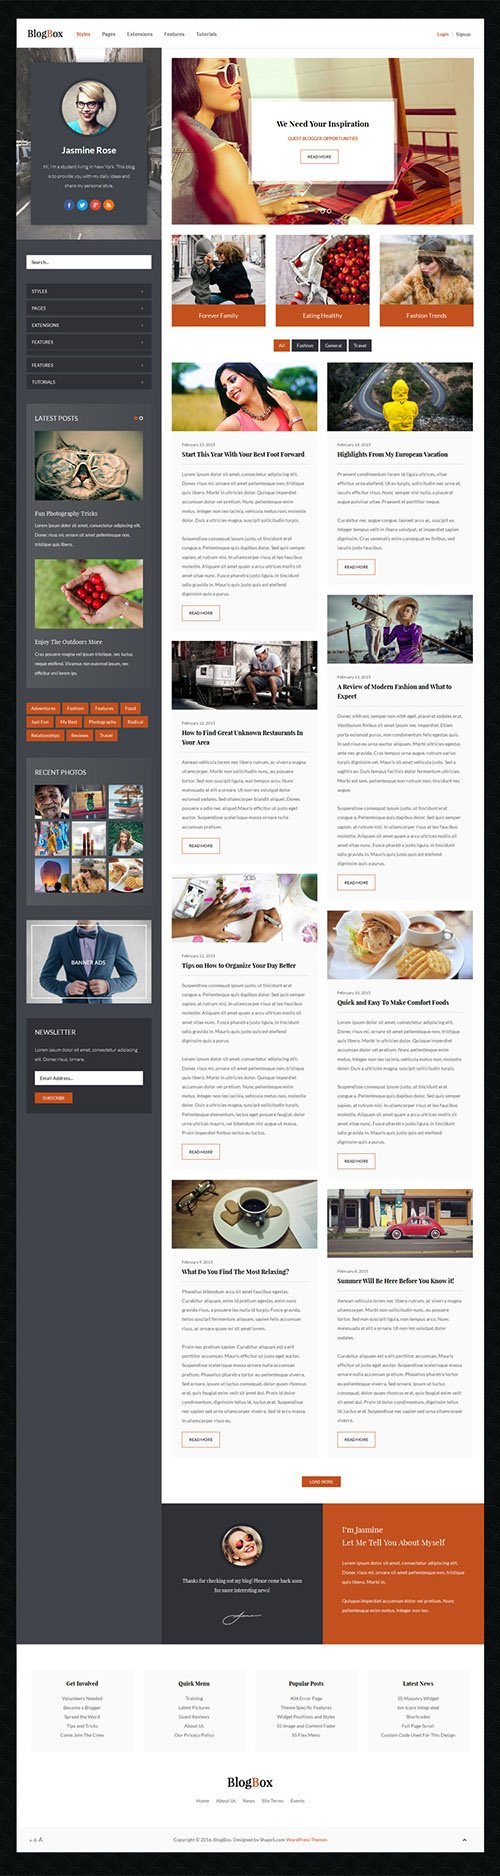 Shape5 - BlogBox v1.0 - WordPress Club Theme